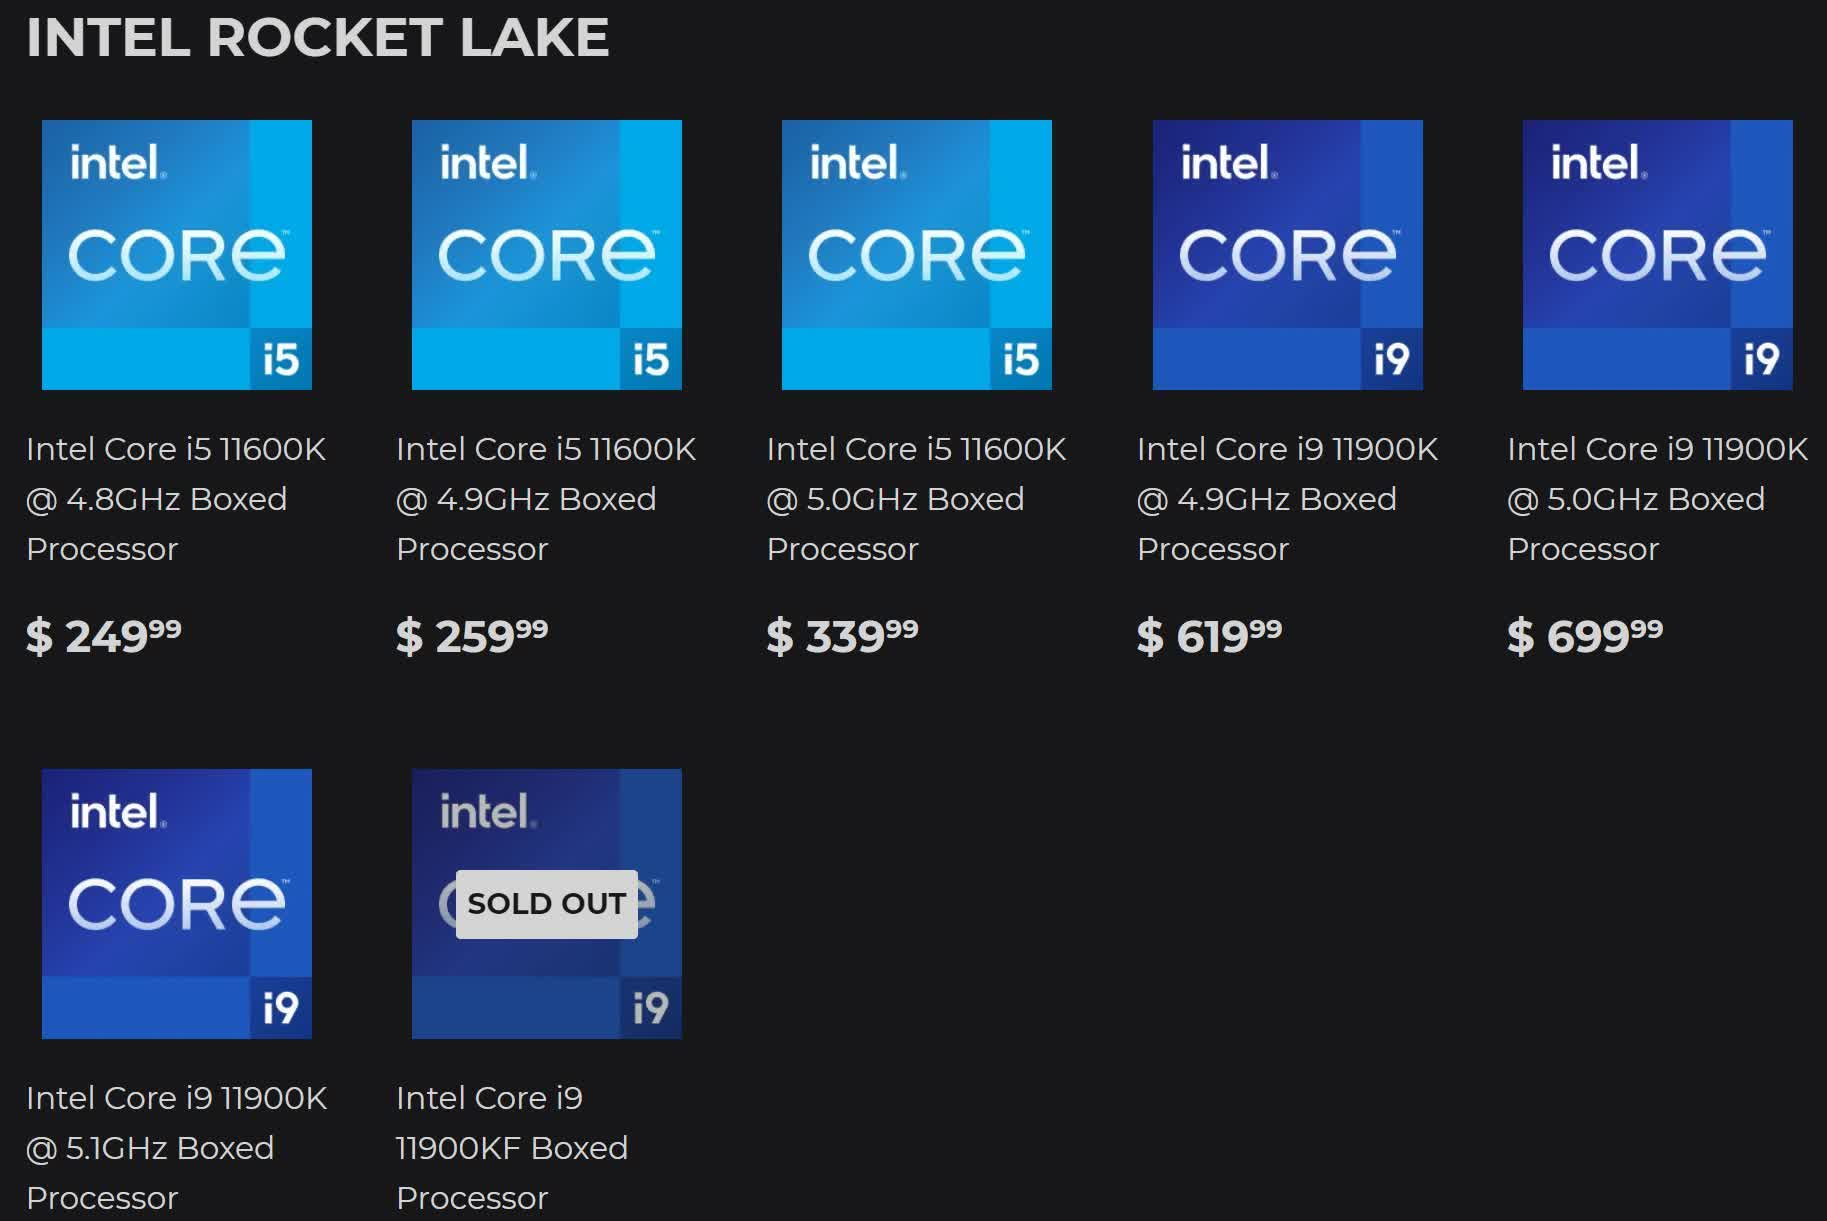 Intel's Rocket Lake prices fall, pre-binned chips available; Comet Lake gets even cheaper